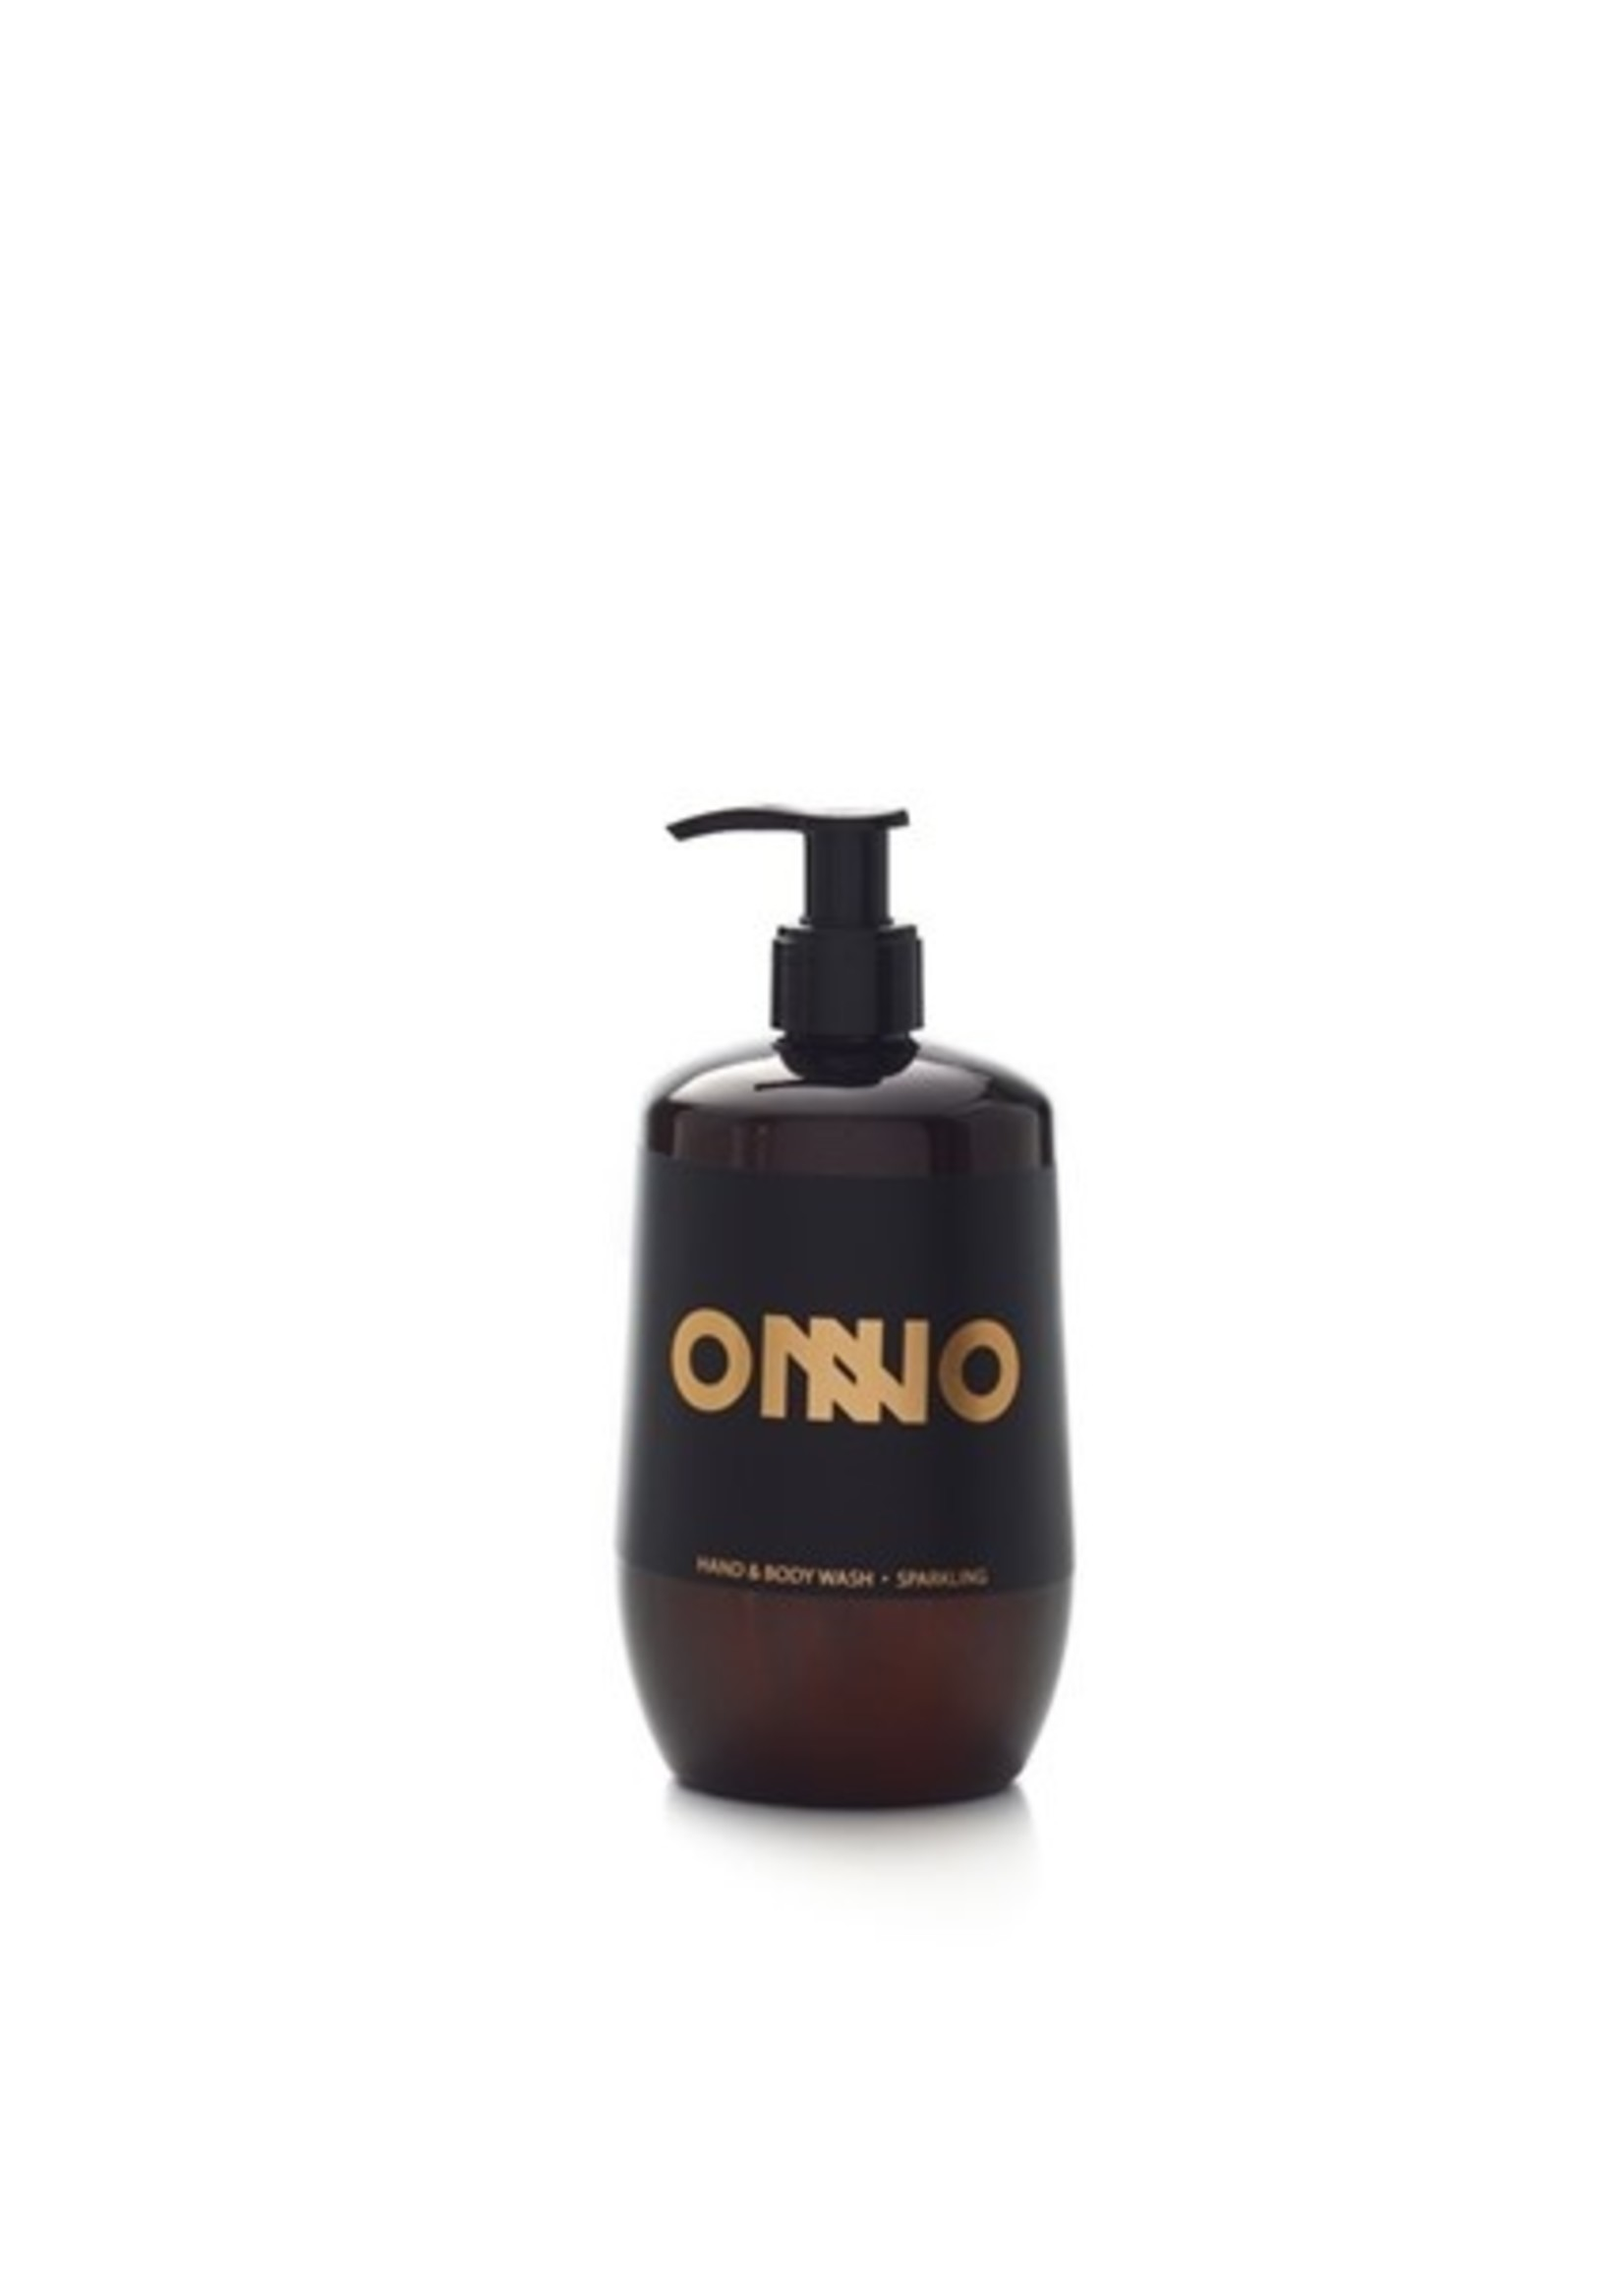 ONNO COLLECTION Onno Hand & Body Wash Sparkling